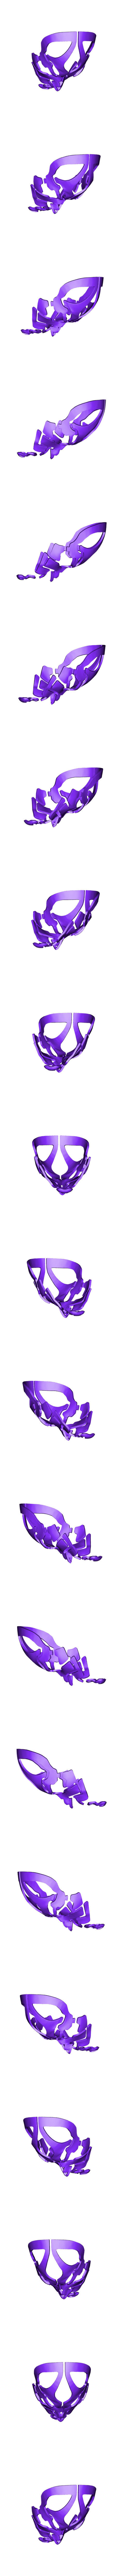 Head_Red.stl Download free STL file MOVED-Darth Maul with Multi-Color Head • 3D printable model, Double_Alfa_3D